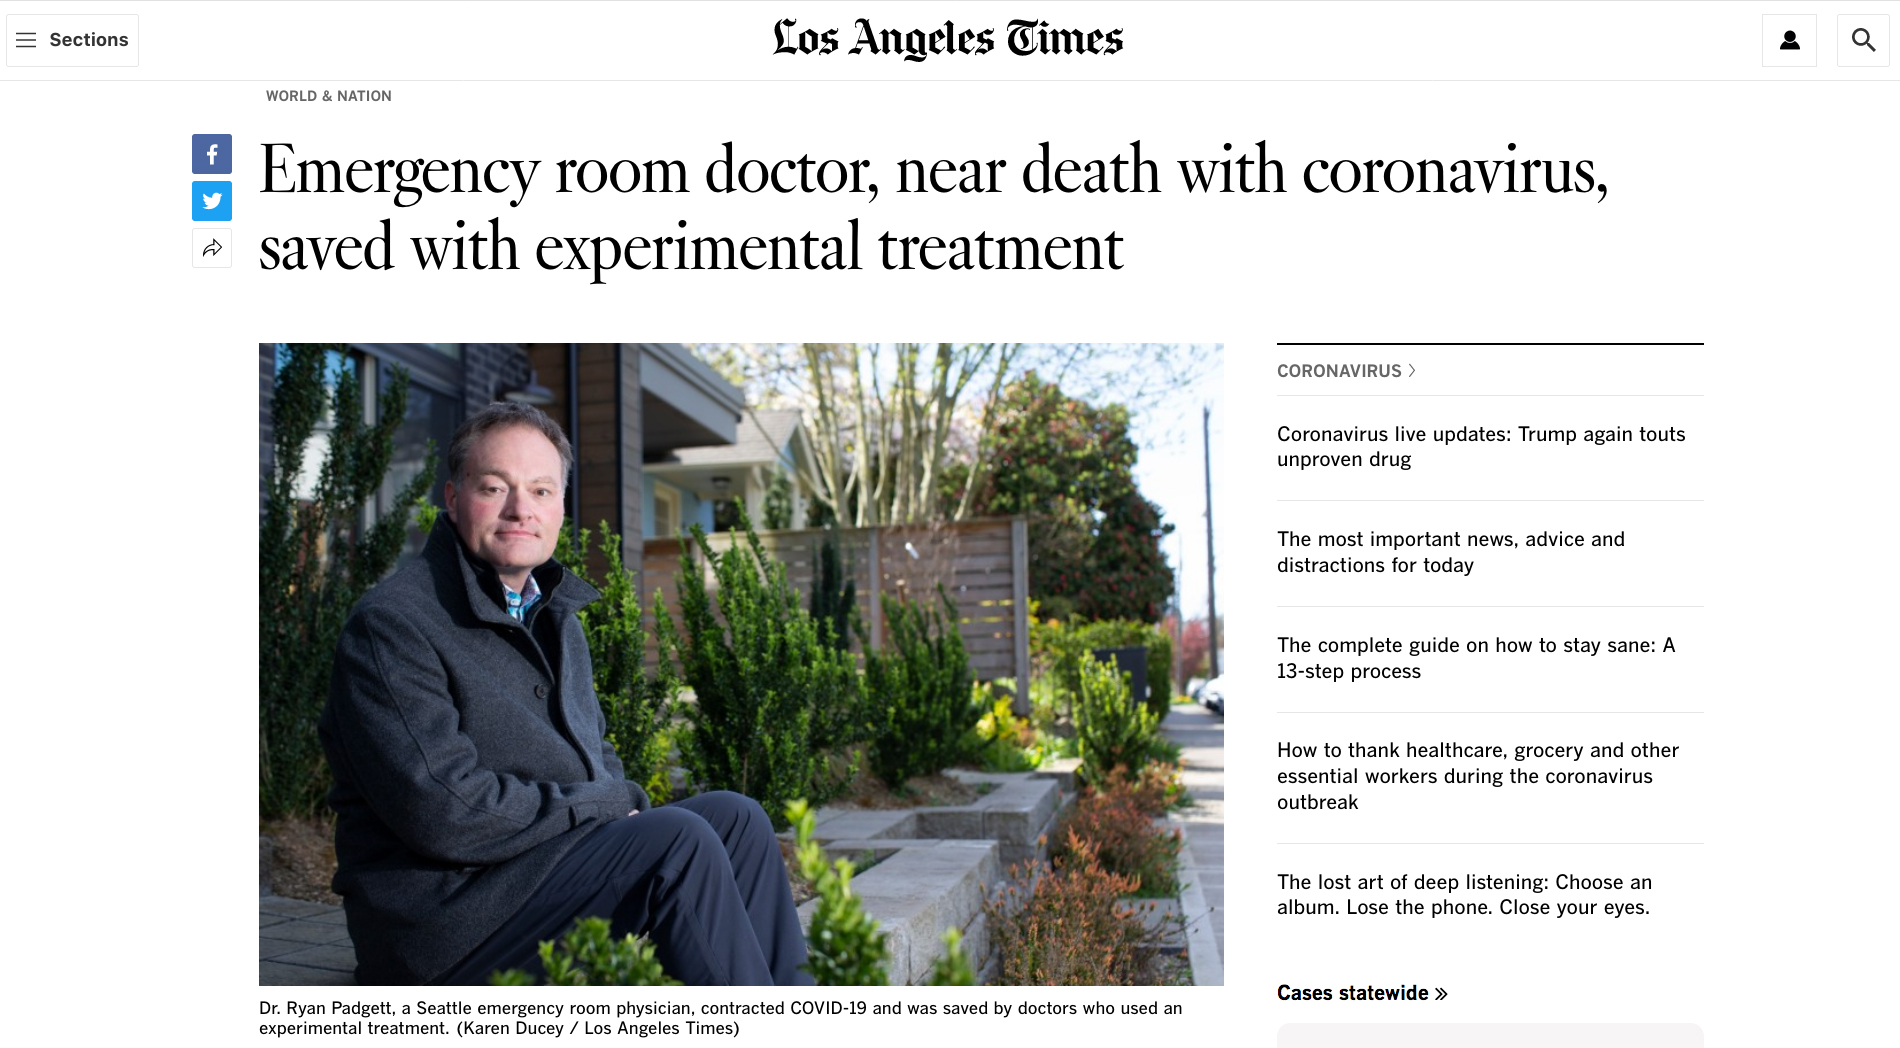 {quote}Emergency room doctor, near death with coronavirus, saved with experimental treatment{quote} Photographed for the Los Angeles Times, April 14, 2020.